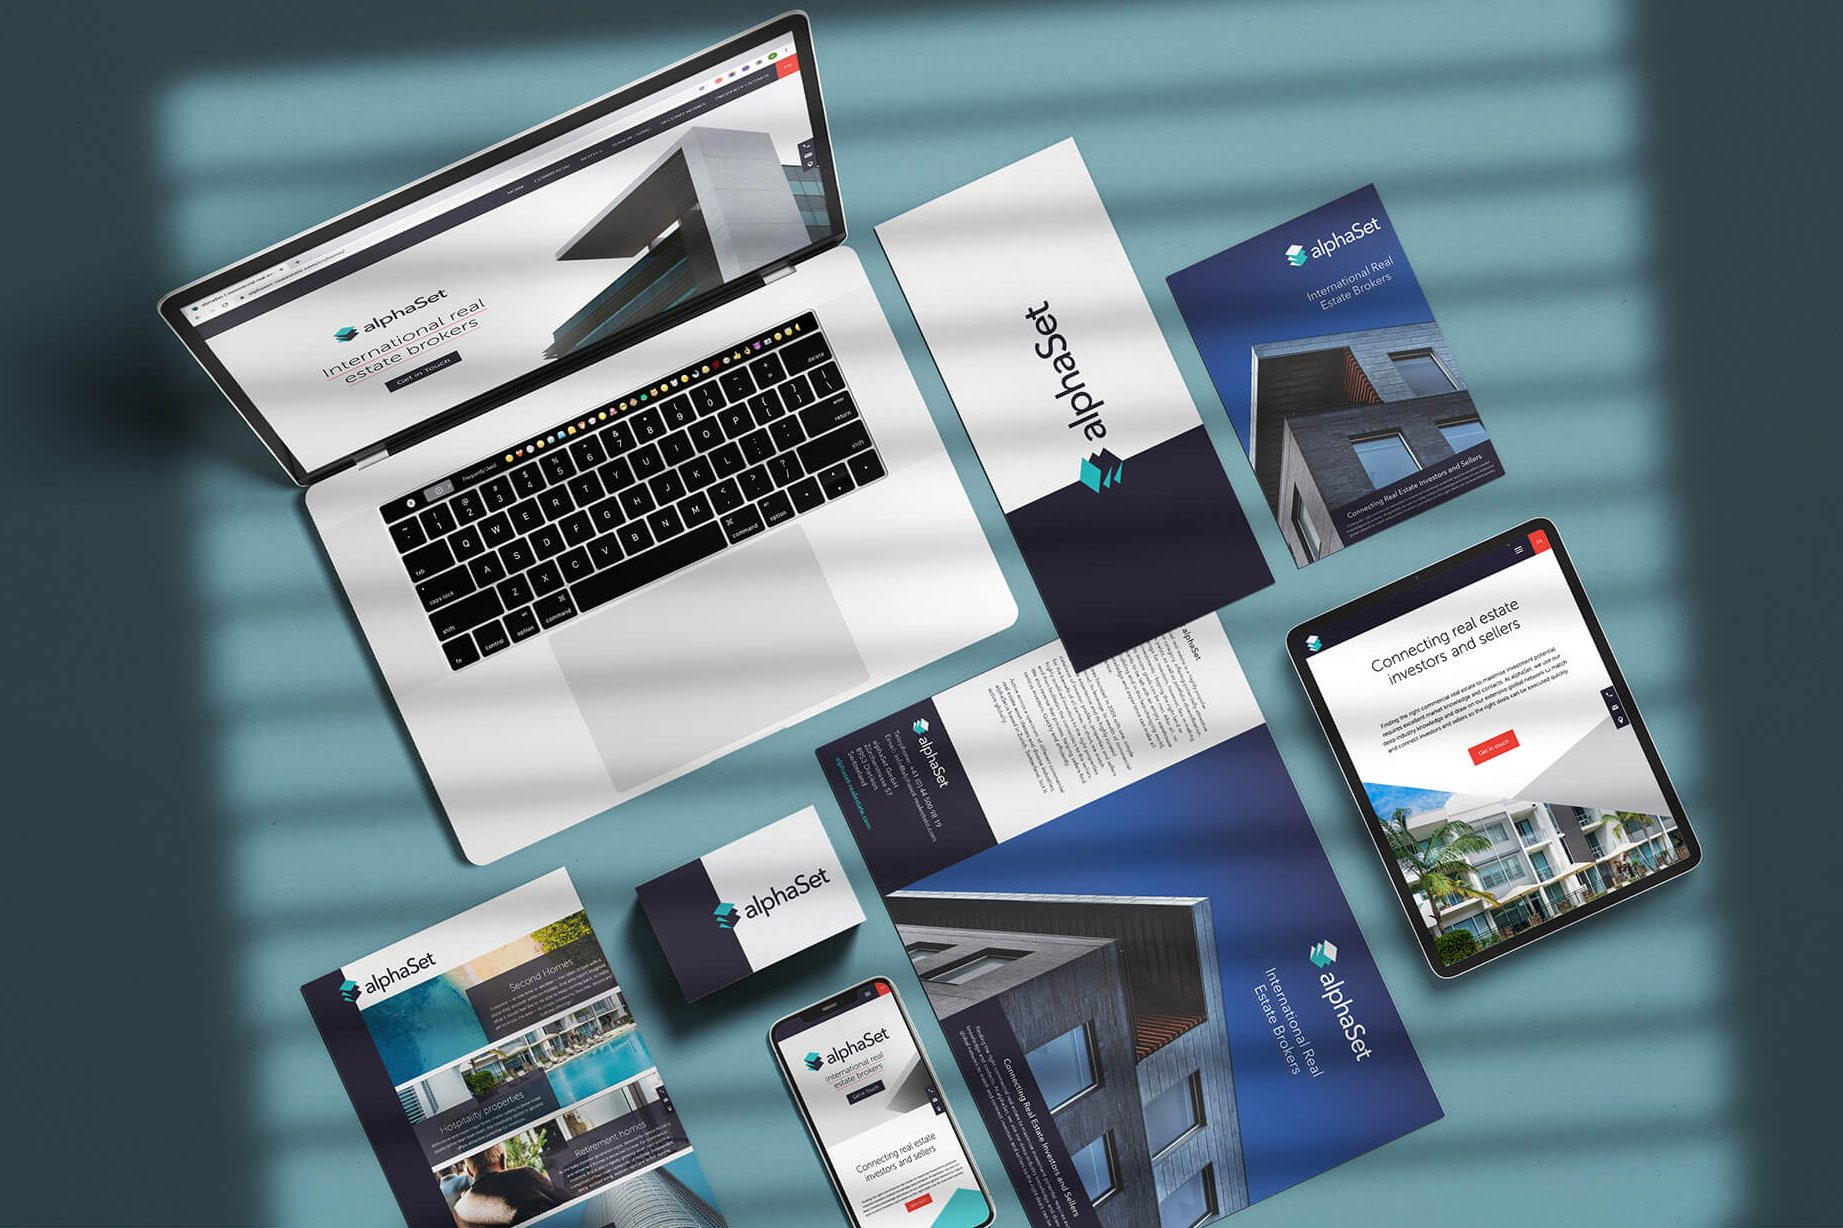 Sample of alphaSet client work on laptop and brochures